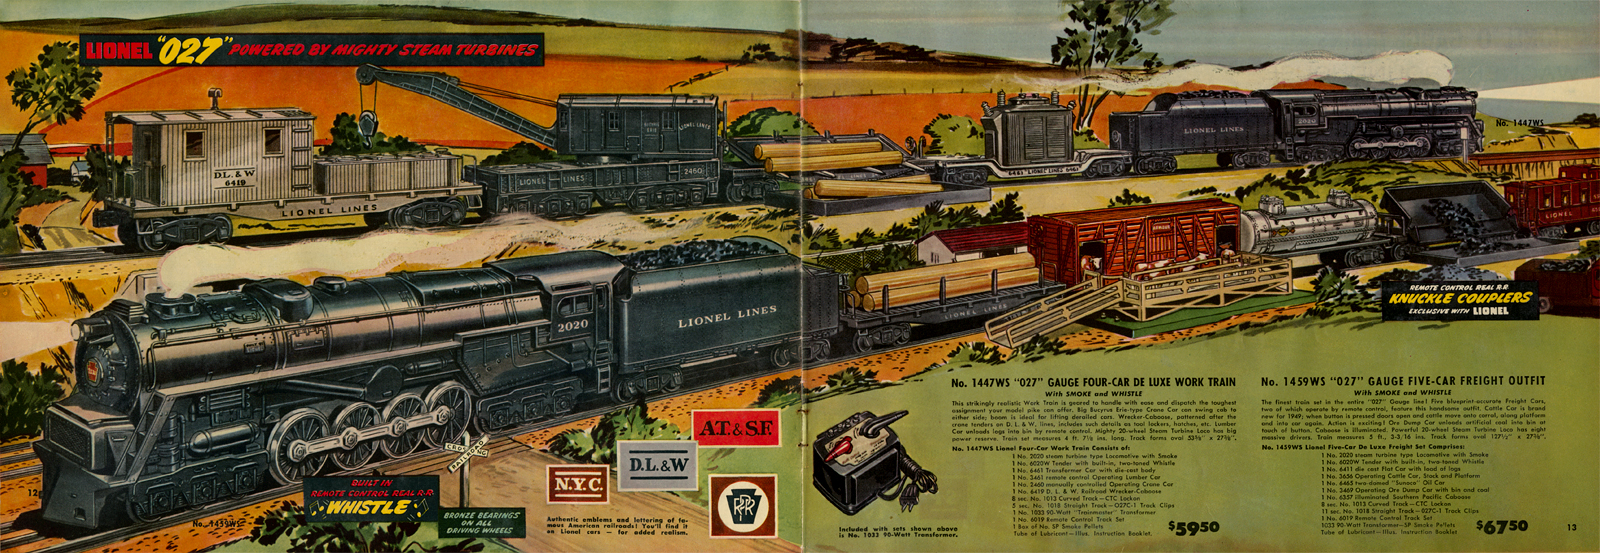 Page 12-13 of Lionel's 1947 product catalog illustrating the deluxe train sets # 1447WS and 1459WS featuring accessories including the log dump car and working cattle pen. Note the locomotive which is modeled after the PRR's failed S2 steam turbine locomotive, which ironically Lionel produced more of than the Juniata Shops!  Original 1947 catalog collection of the author.